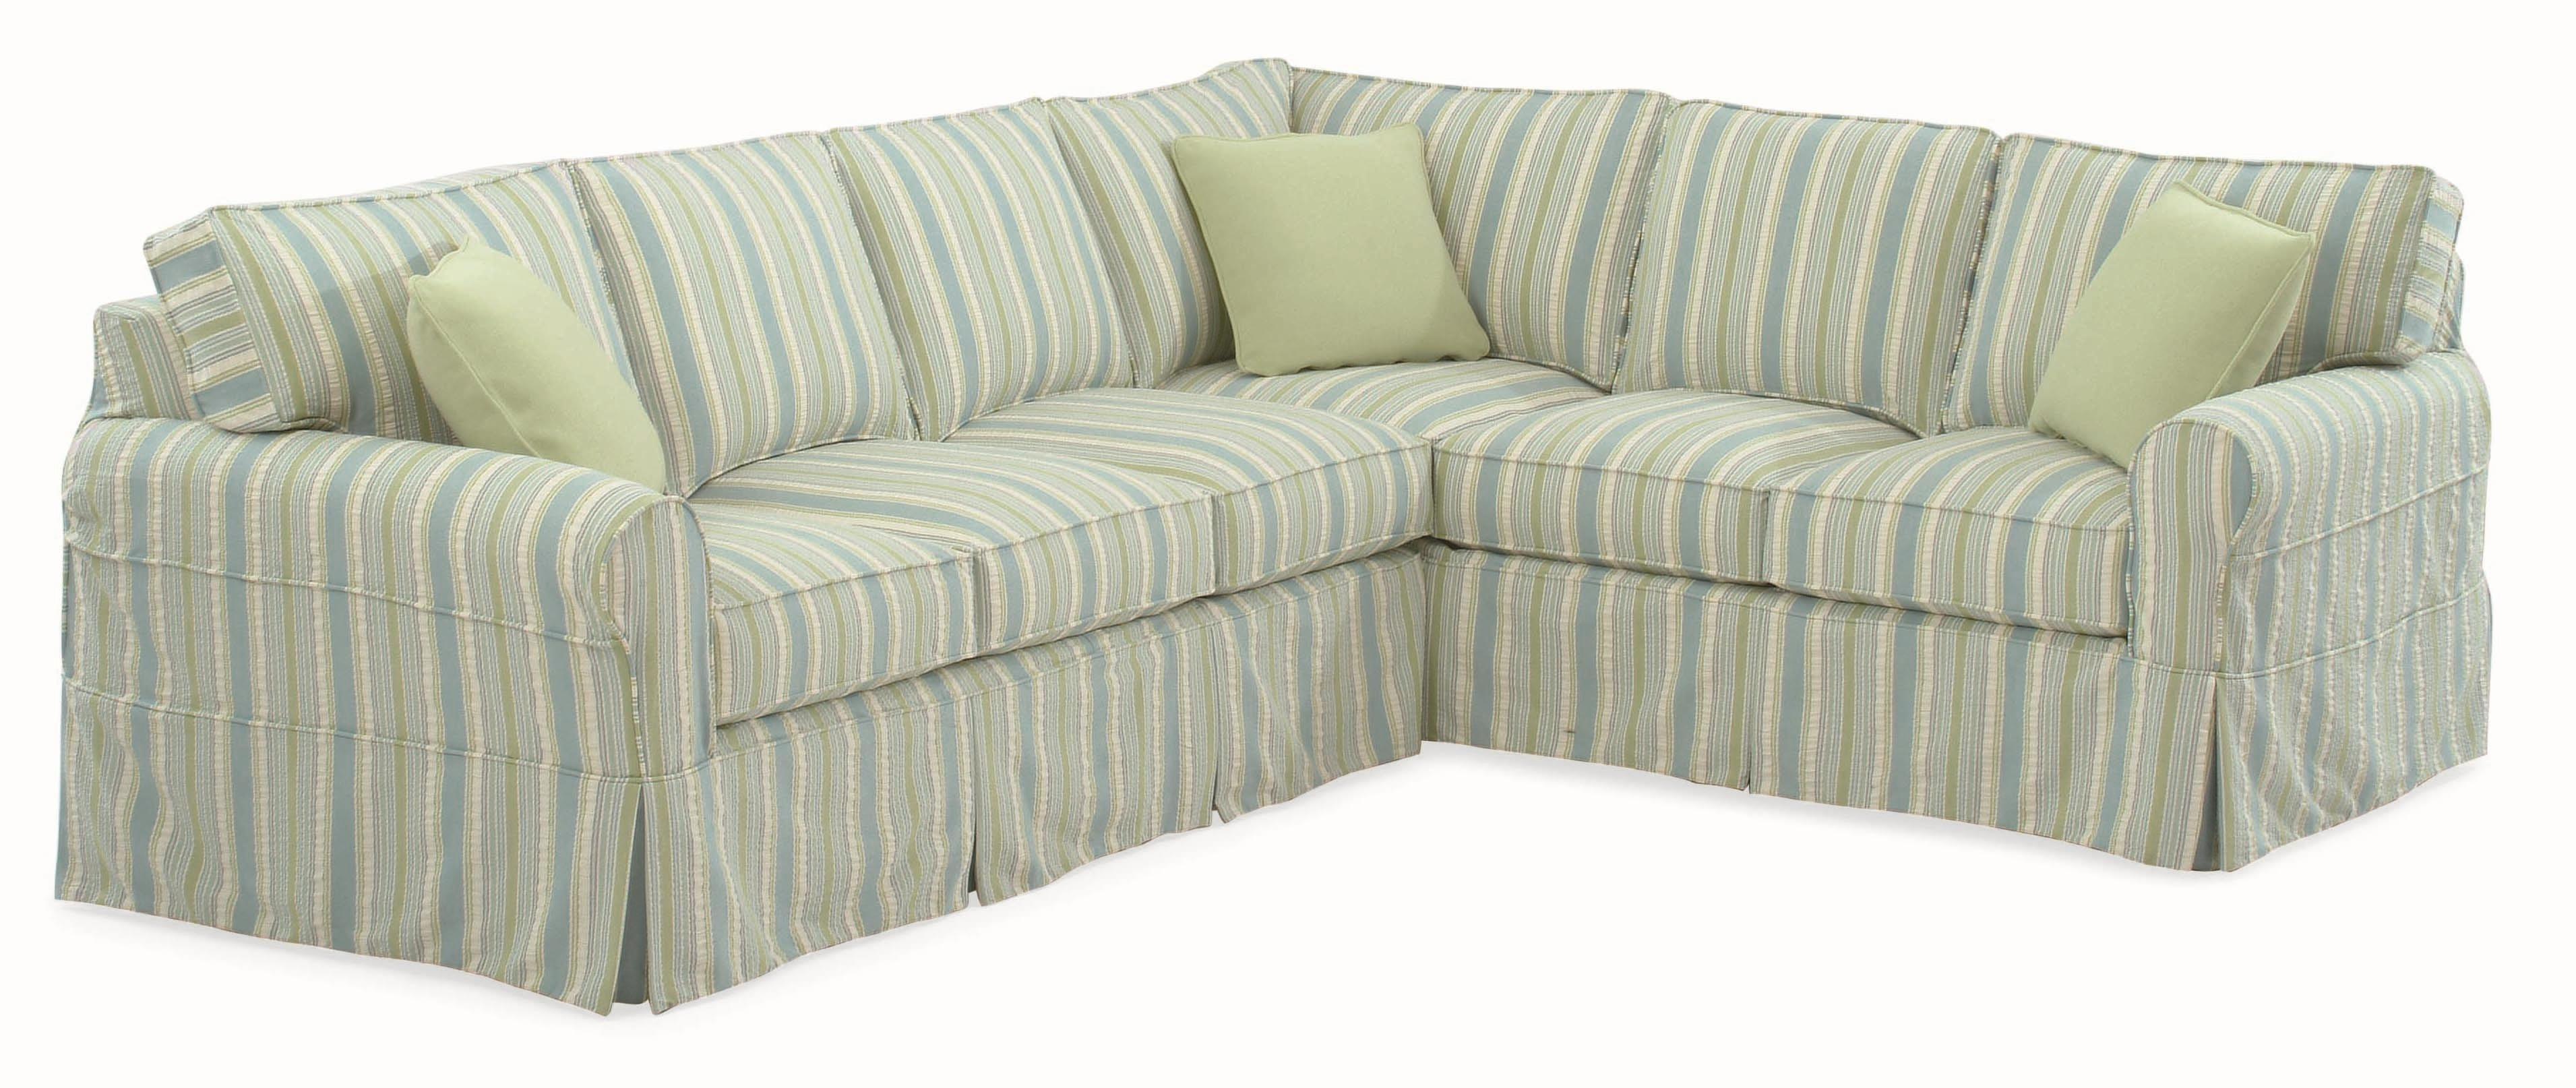 Beautiful Havertys Sectional Sofa 70 With Additional Tempurpedic regarding Sectional Sofas at Havertys (Image 2 of 15)